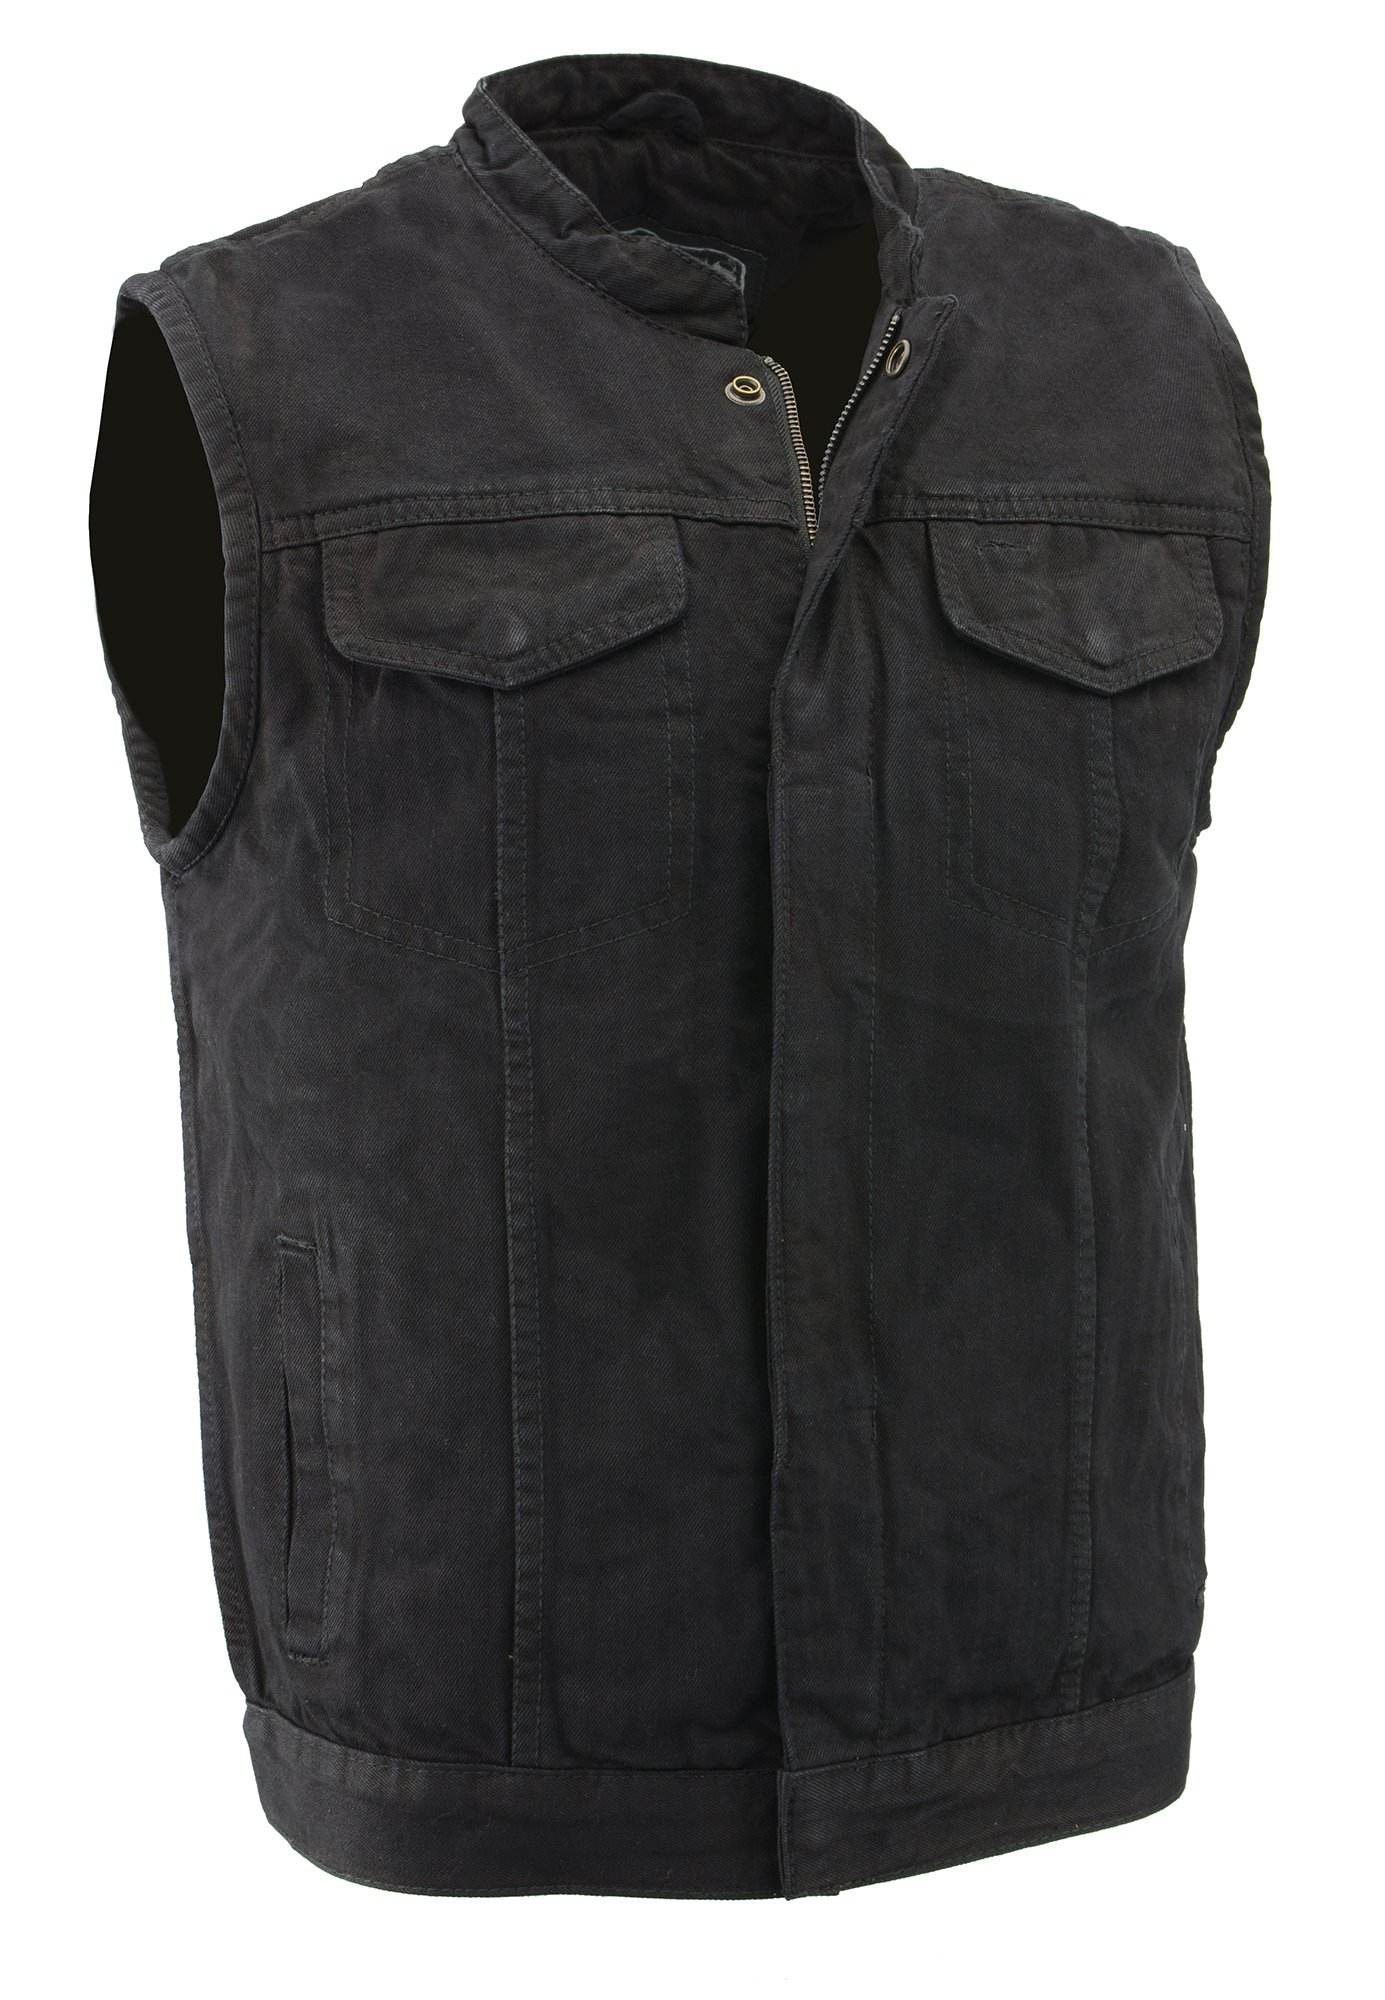 M-Boss Motorcycle Apparel-BOS13000-BLACK-Men's Denim Club Style Vest w/Hidden Zipper-BLACK-4XL